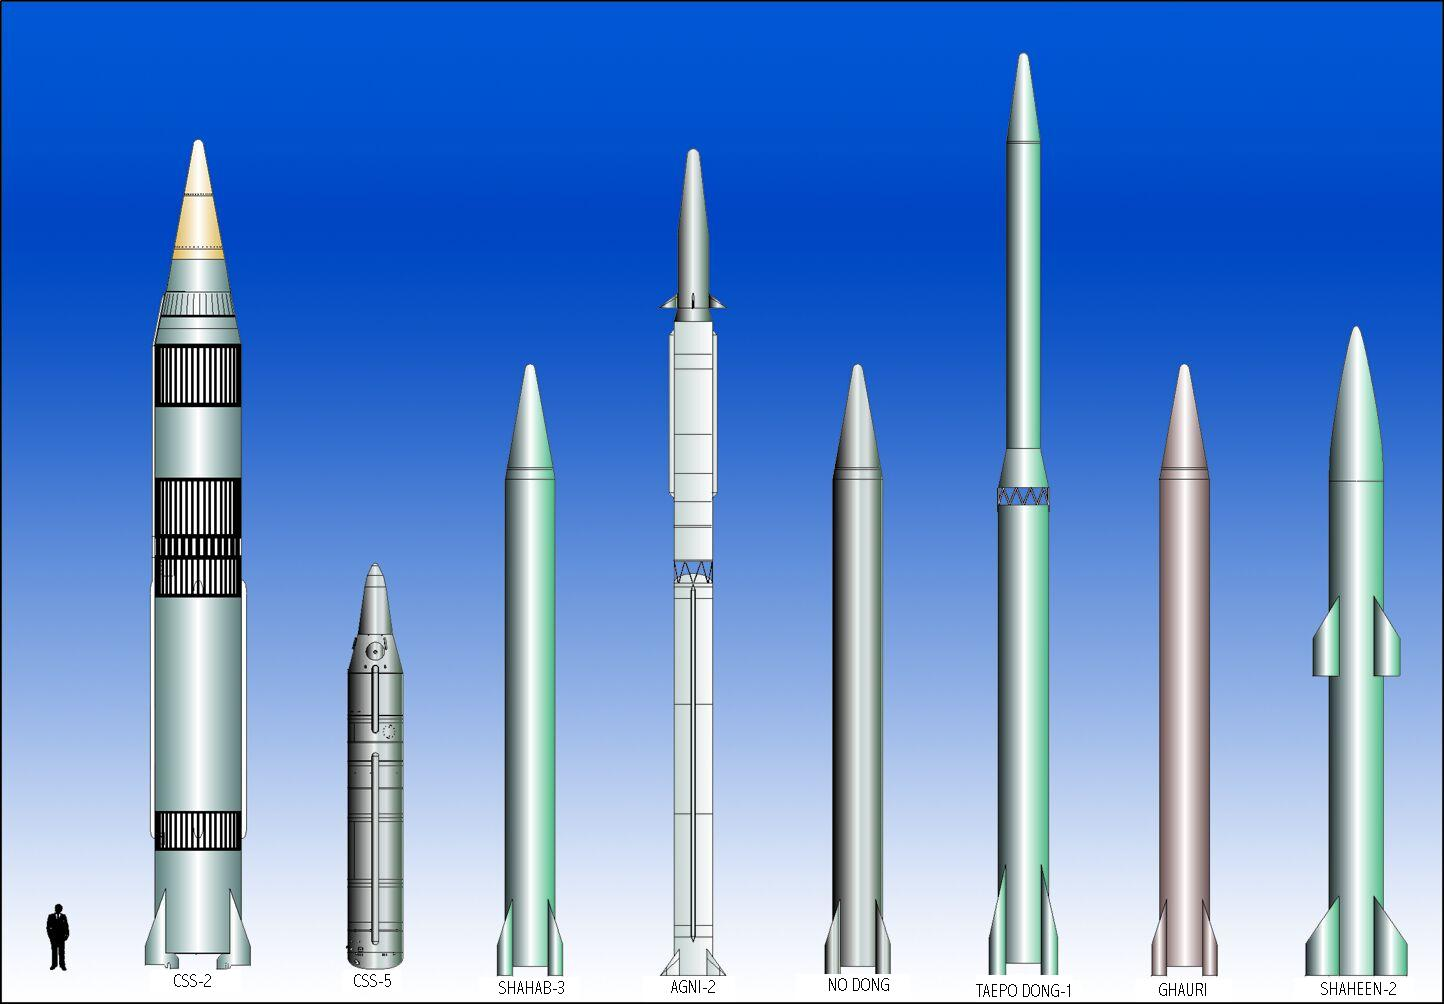 Amature rocketry missle range